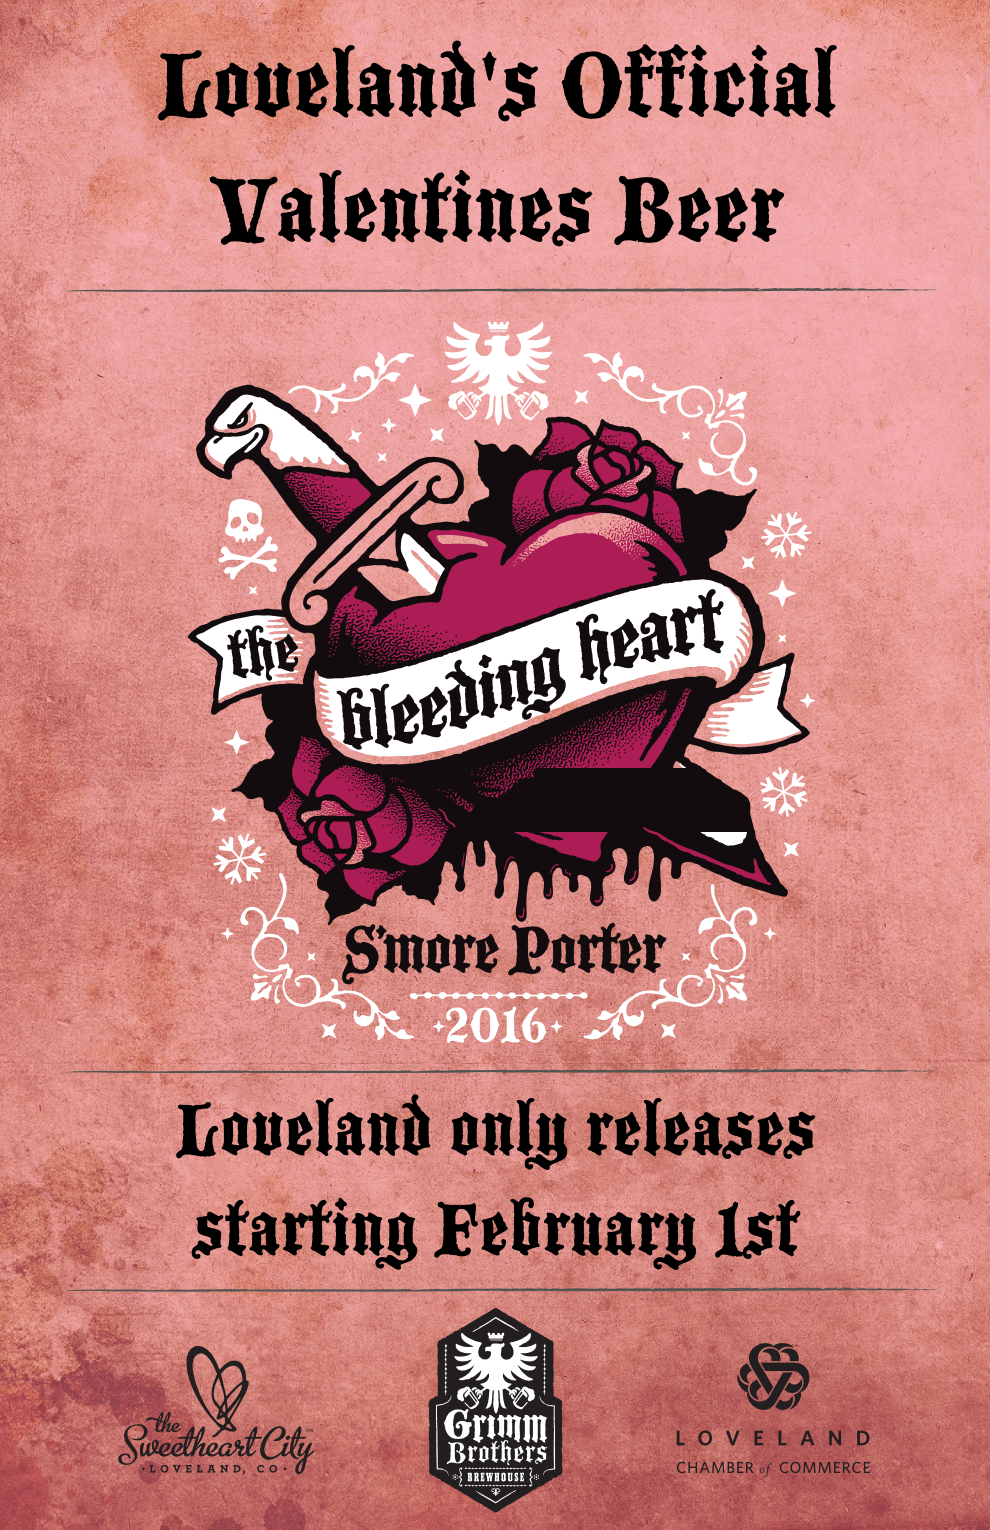 loveland co official valentines beer releases february 1st